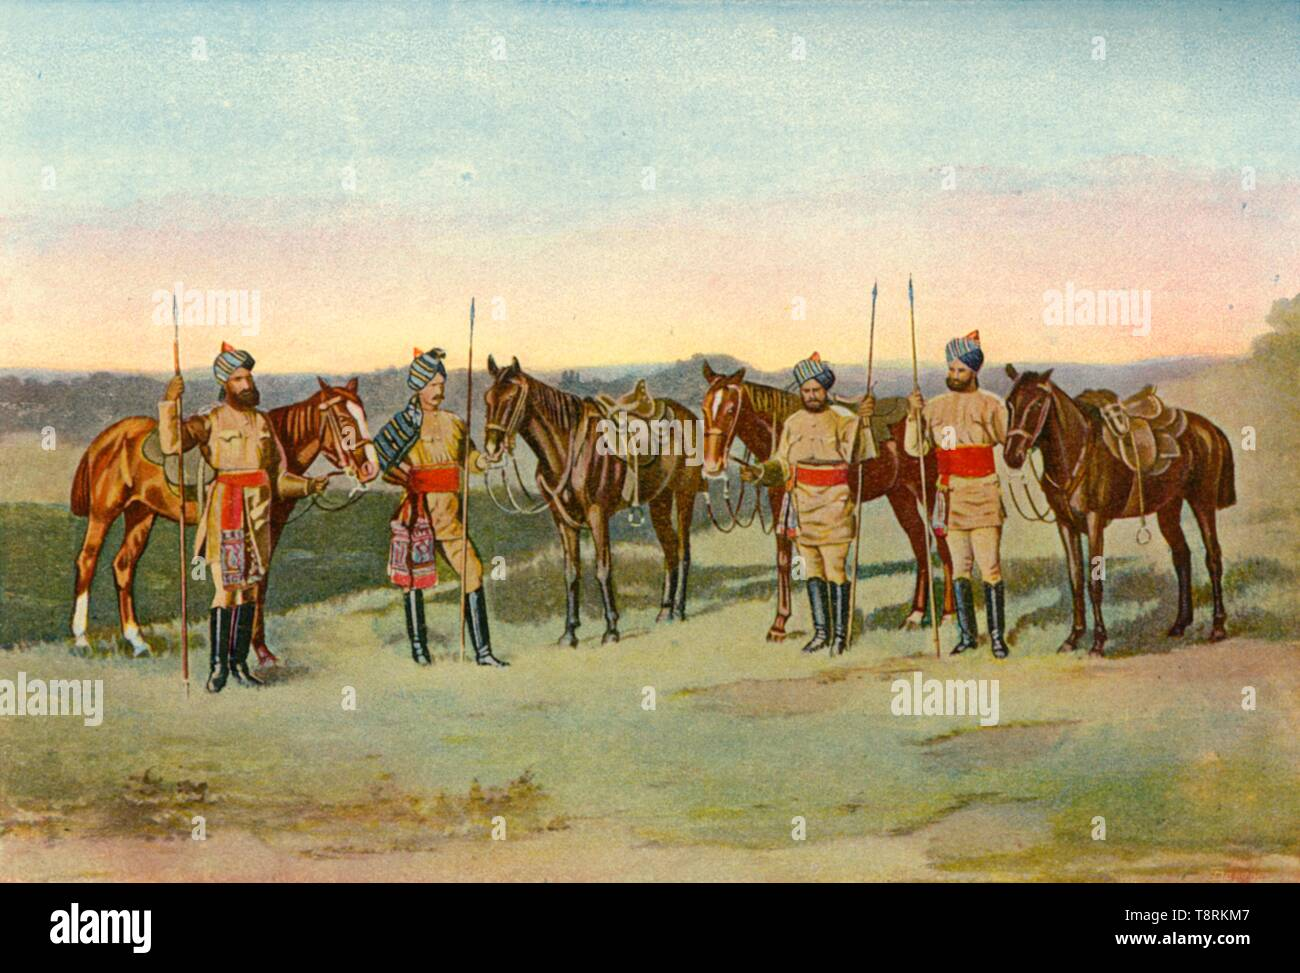 'The Second Bengal Lancers', 1901. Creator: Unknown. - Stock Image